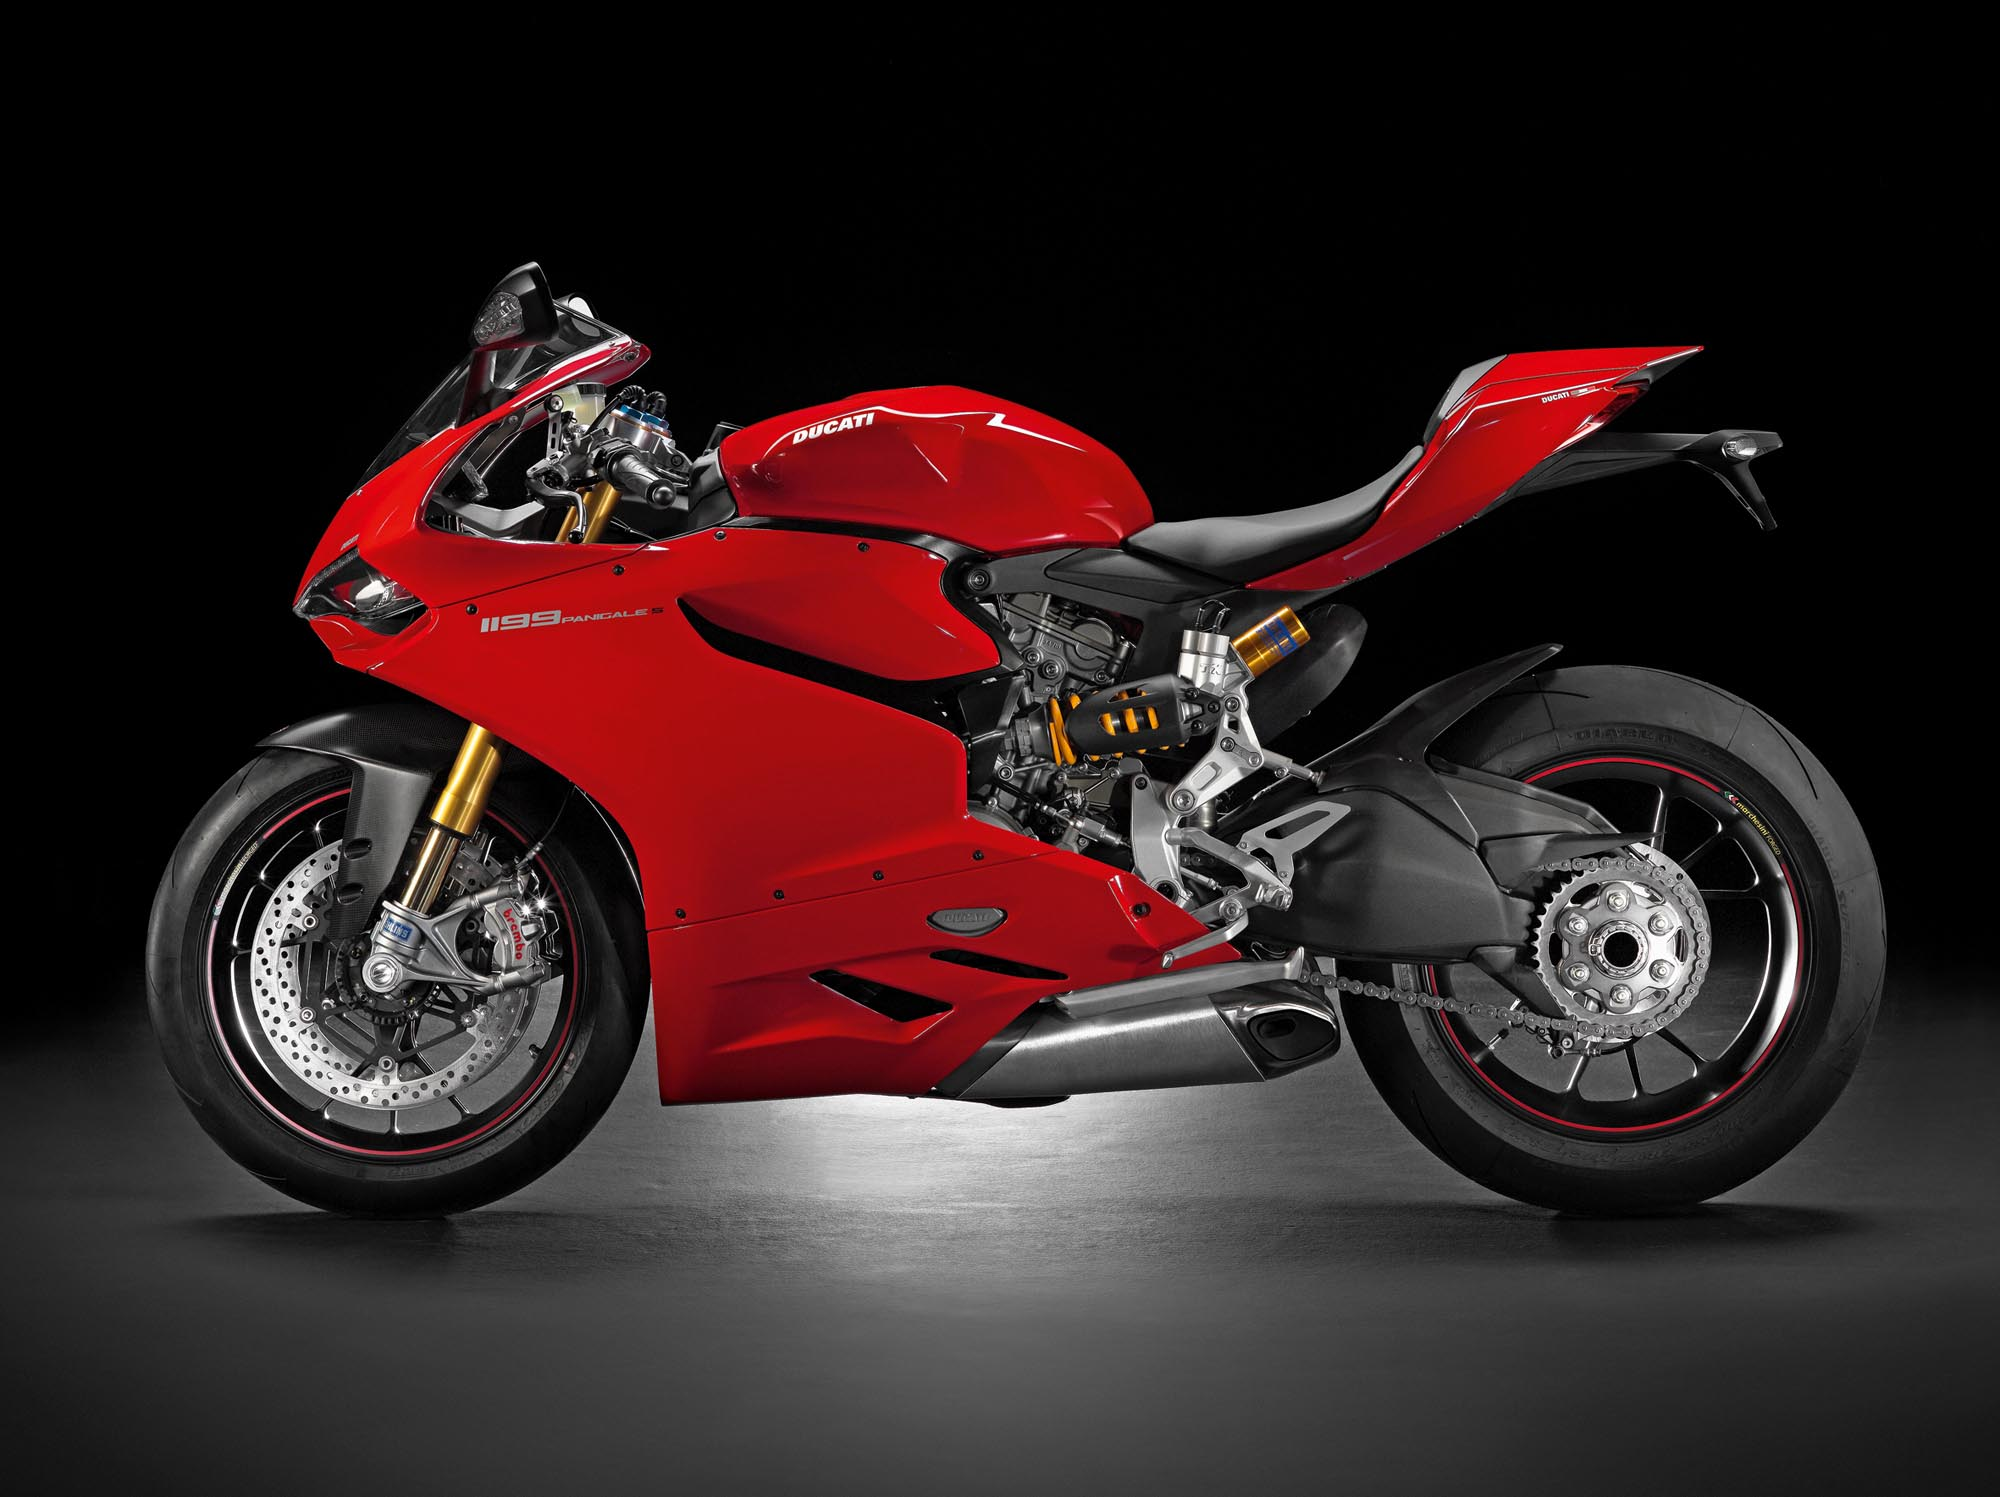 2012 Ducati 1199 Panigale Redefines The Word 'Superbike